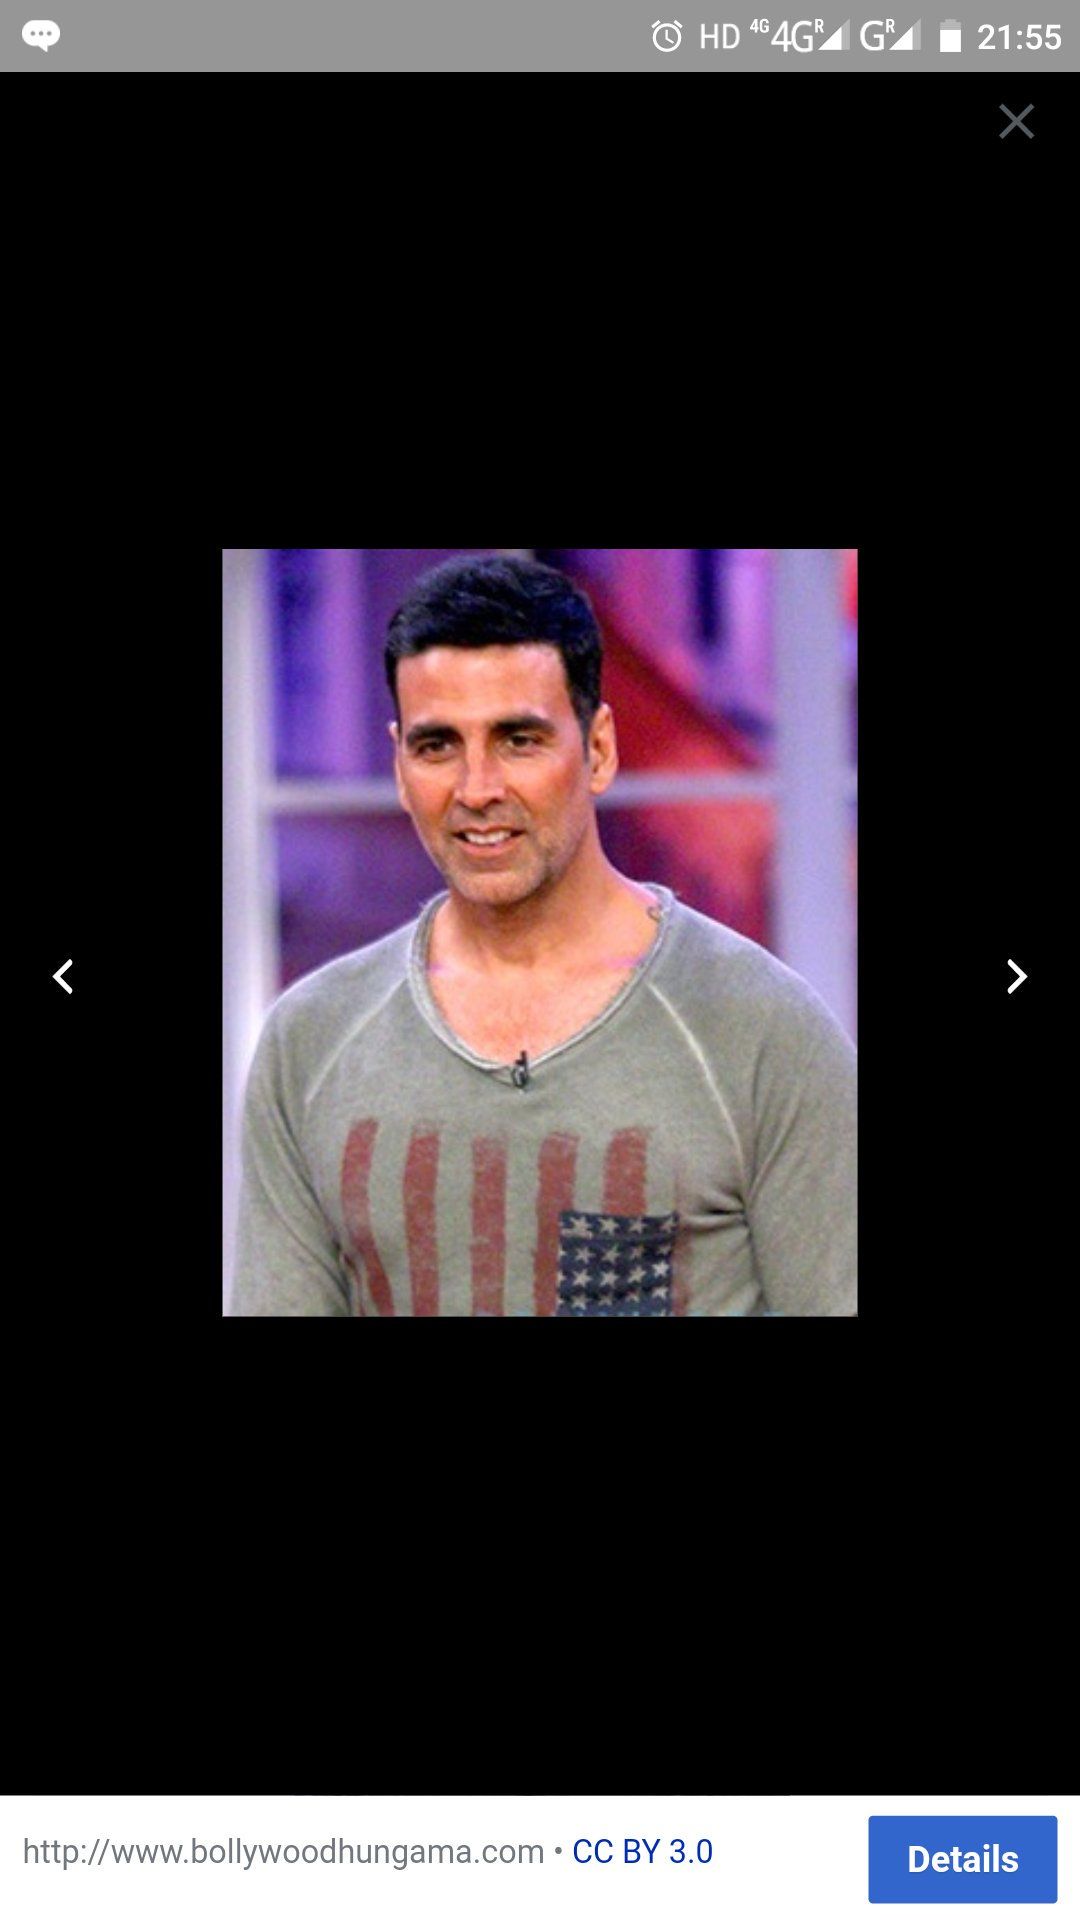 Hi The Hero Happy Birthday dear young man akshay kumar